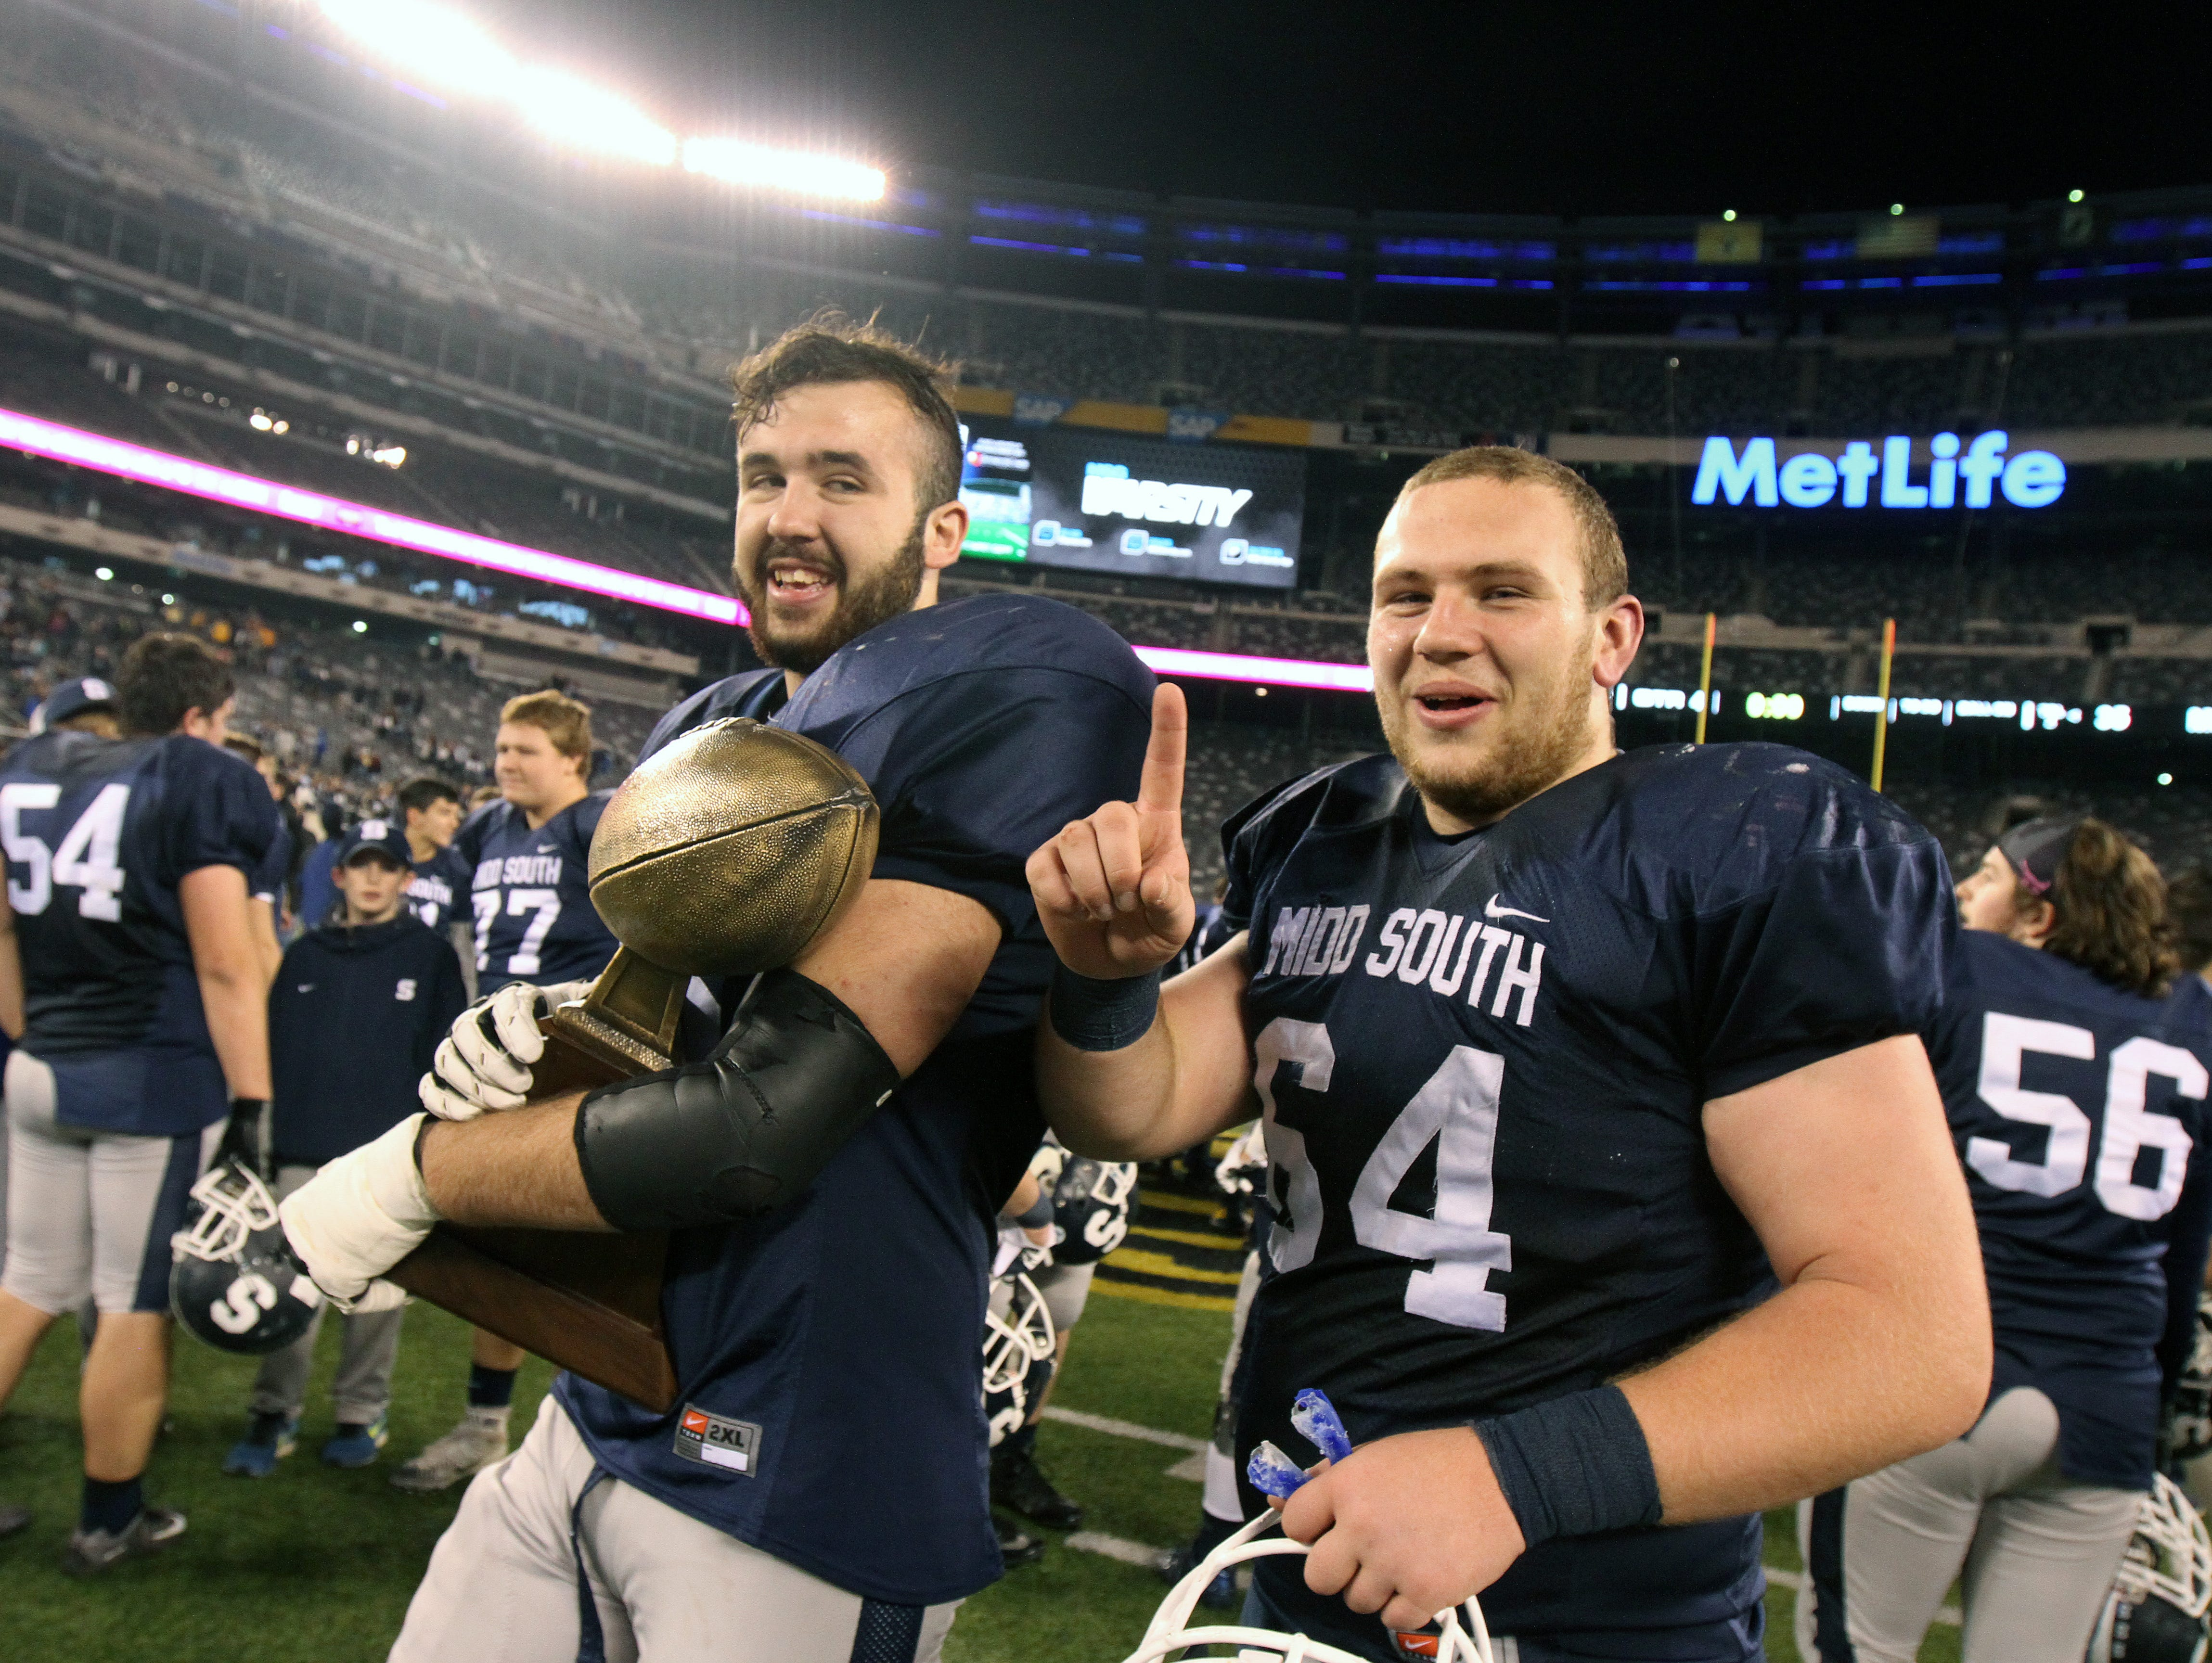 Middletown South High School football team celebrates winning the state title against Phillipsburg in the North 2 Group IV game of the 2015 NJSIAA/MetLife Stadium High School Football Championships at MetLife Stadium in East Rutherford, NJ Saturday December 5, 2015.